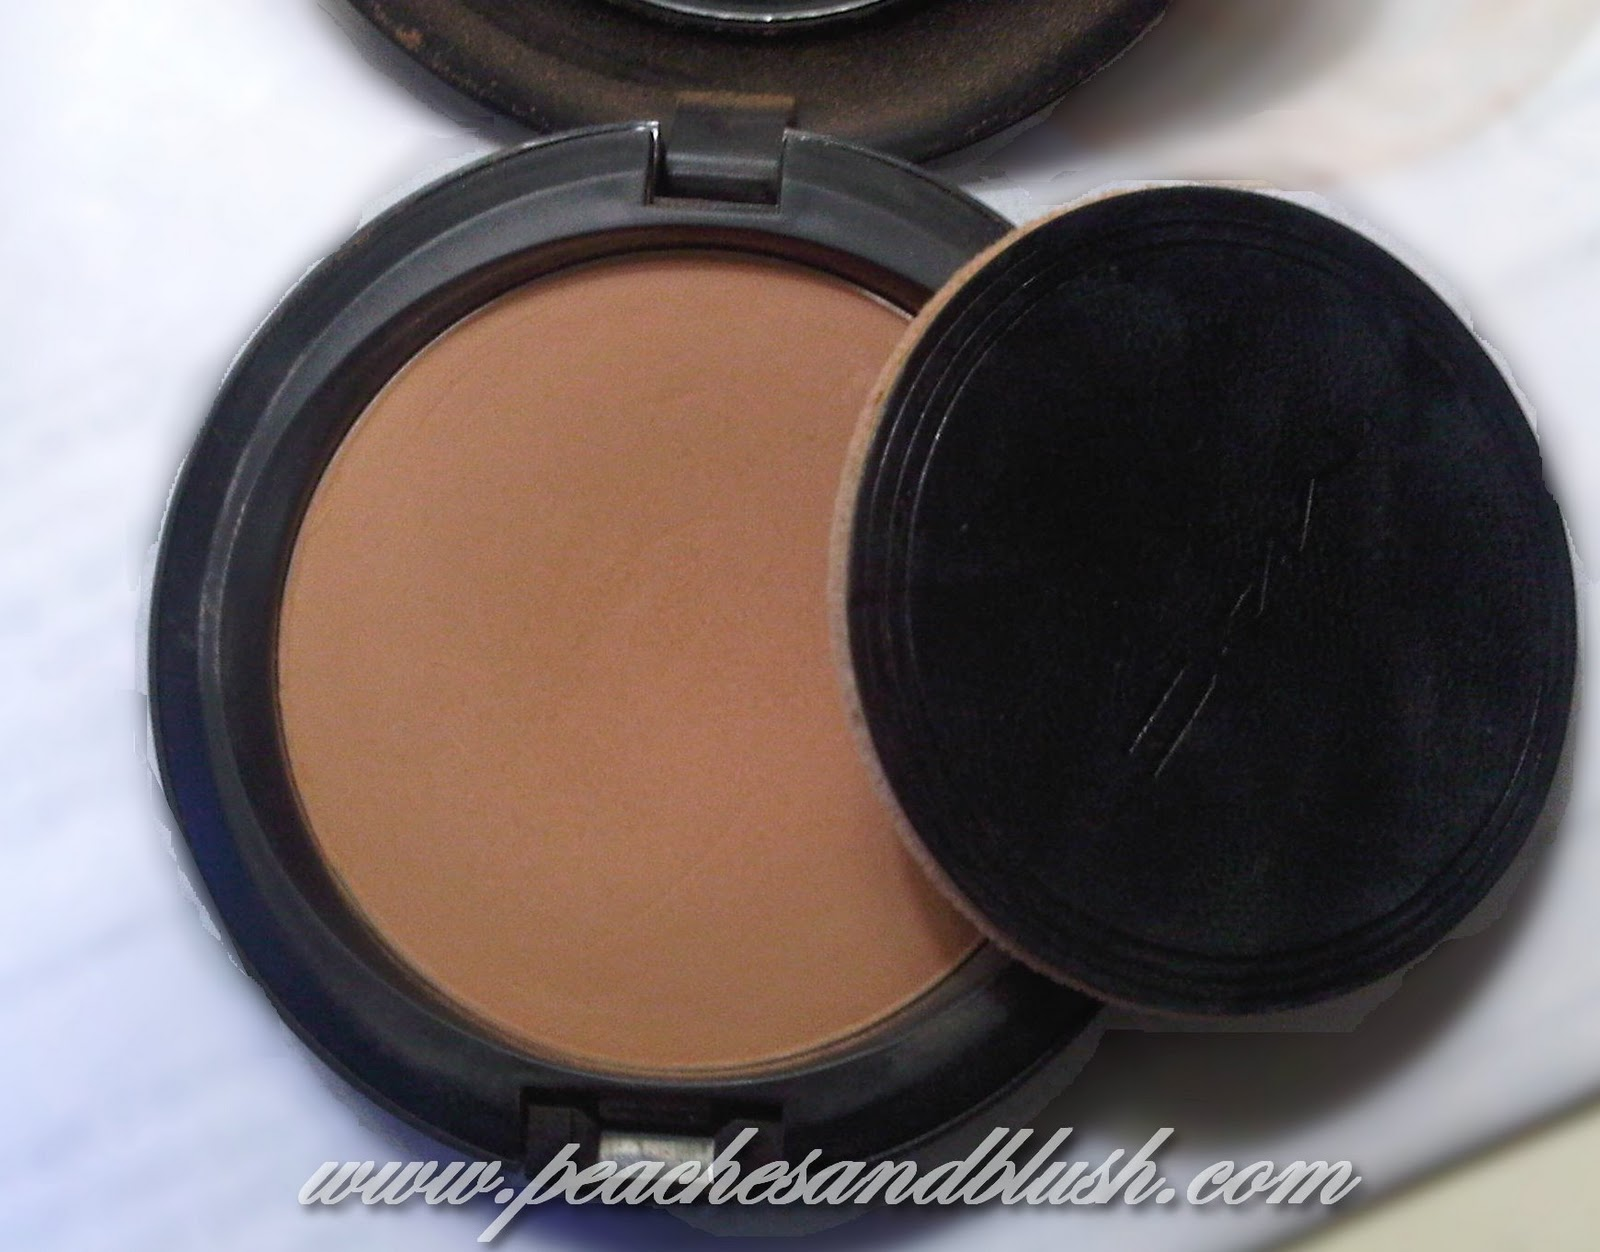 Sheer Finish Pressed Powder by Bobbi Brown Cosmetics #22